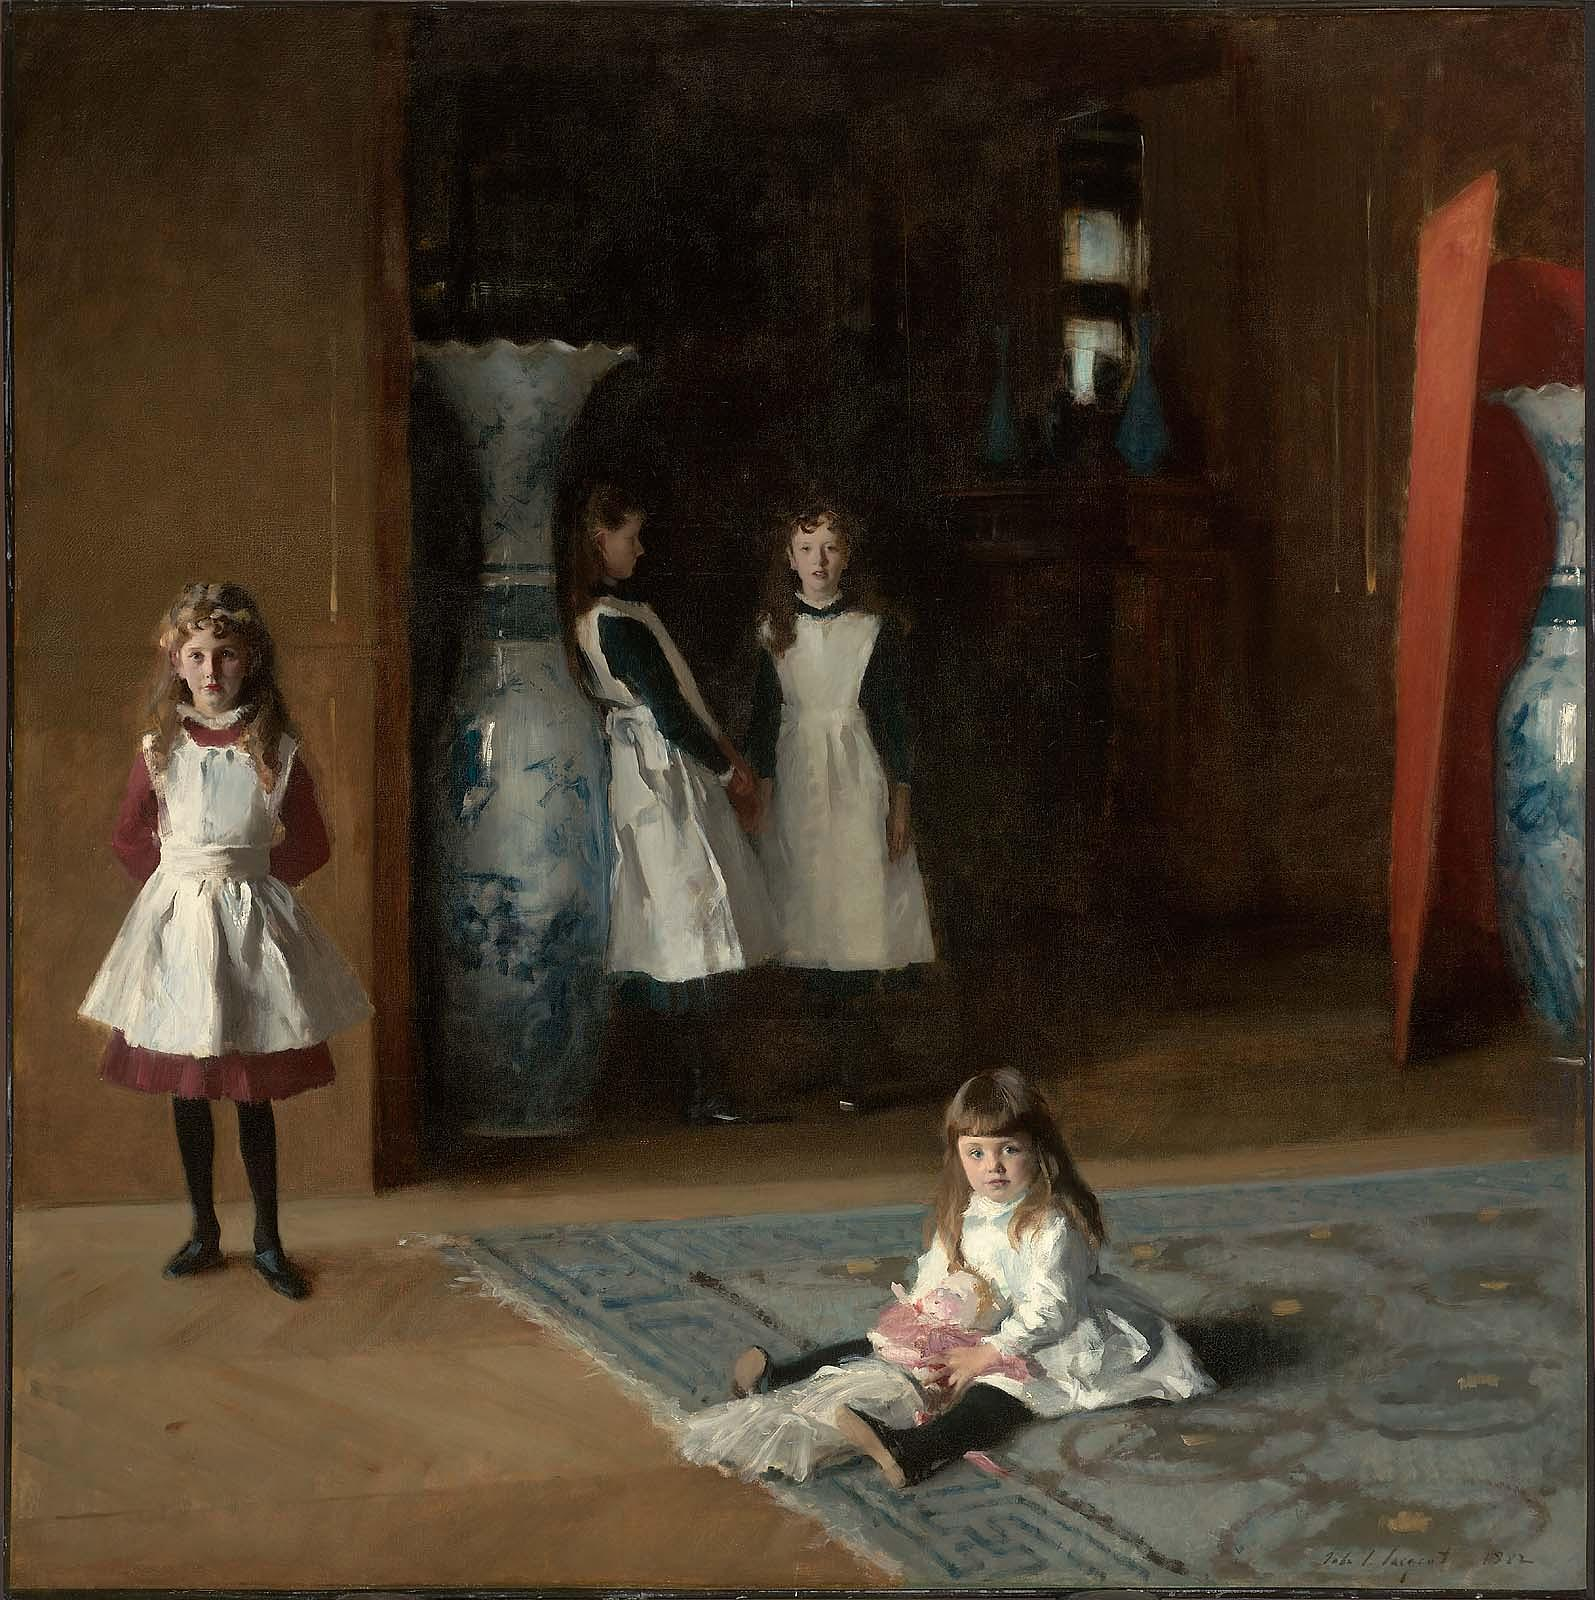 Painting of an interior room with four girls. Three are looking at the viewer, one sitting on the ground, and the other is looking off to the right. There are two large blue and white vases in the room.